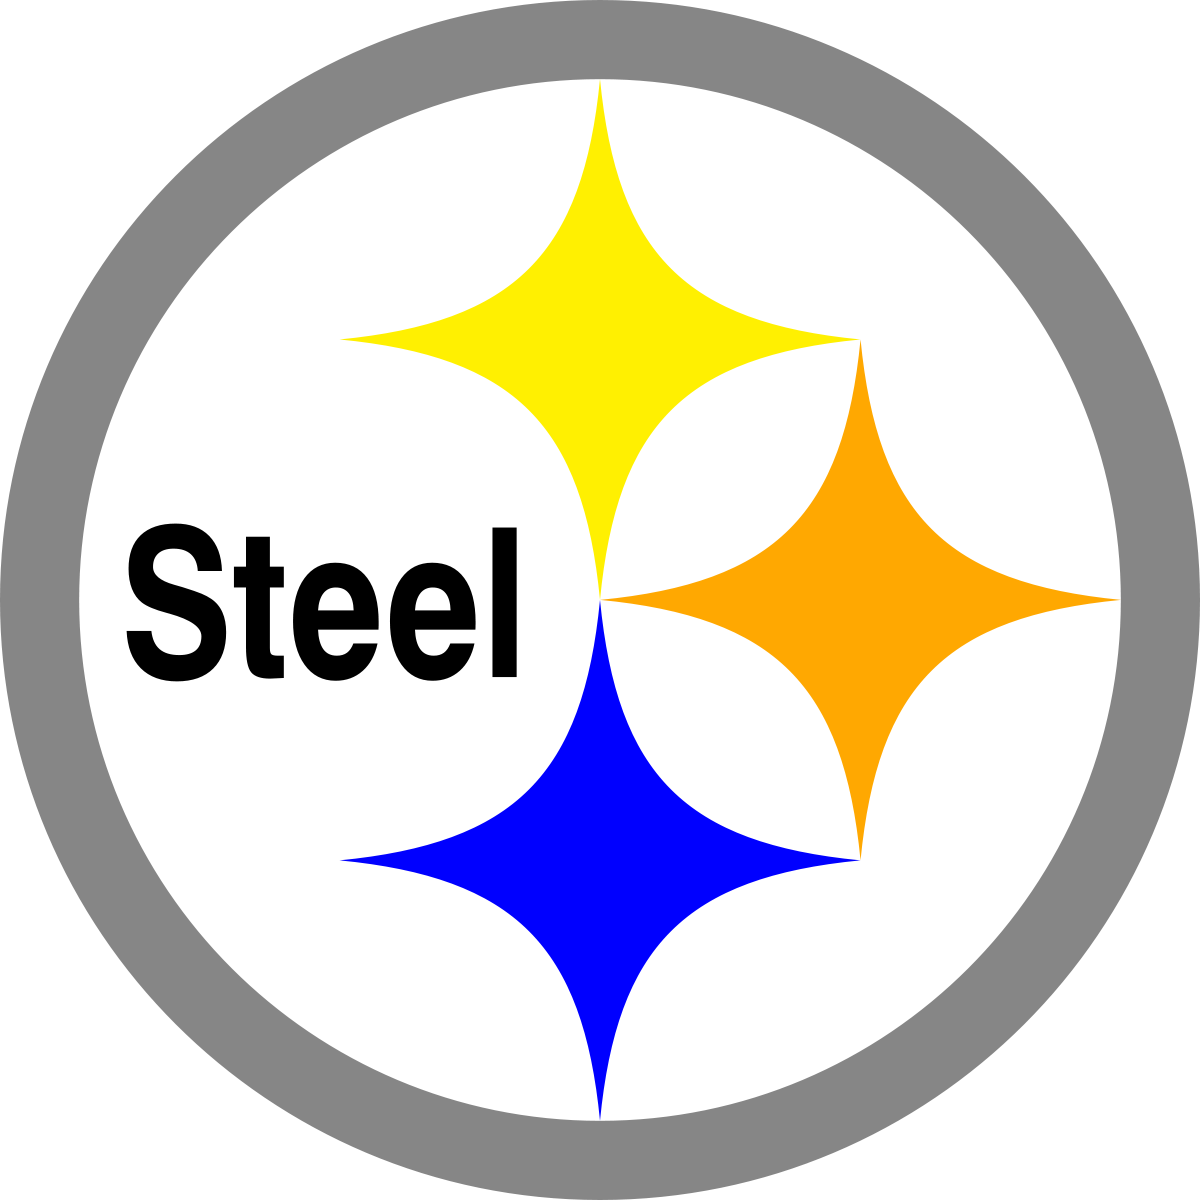 Steelers vector logo. Steelmark wikipedia